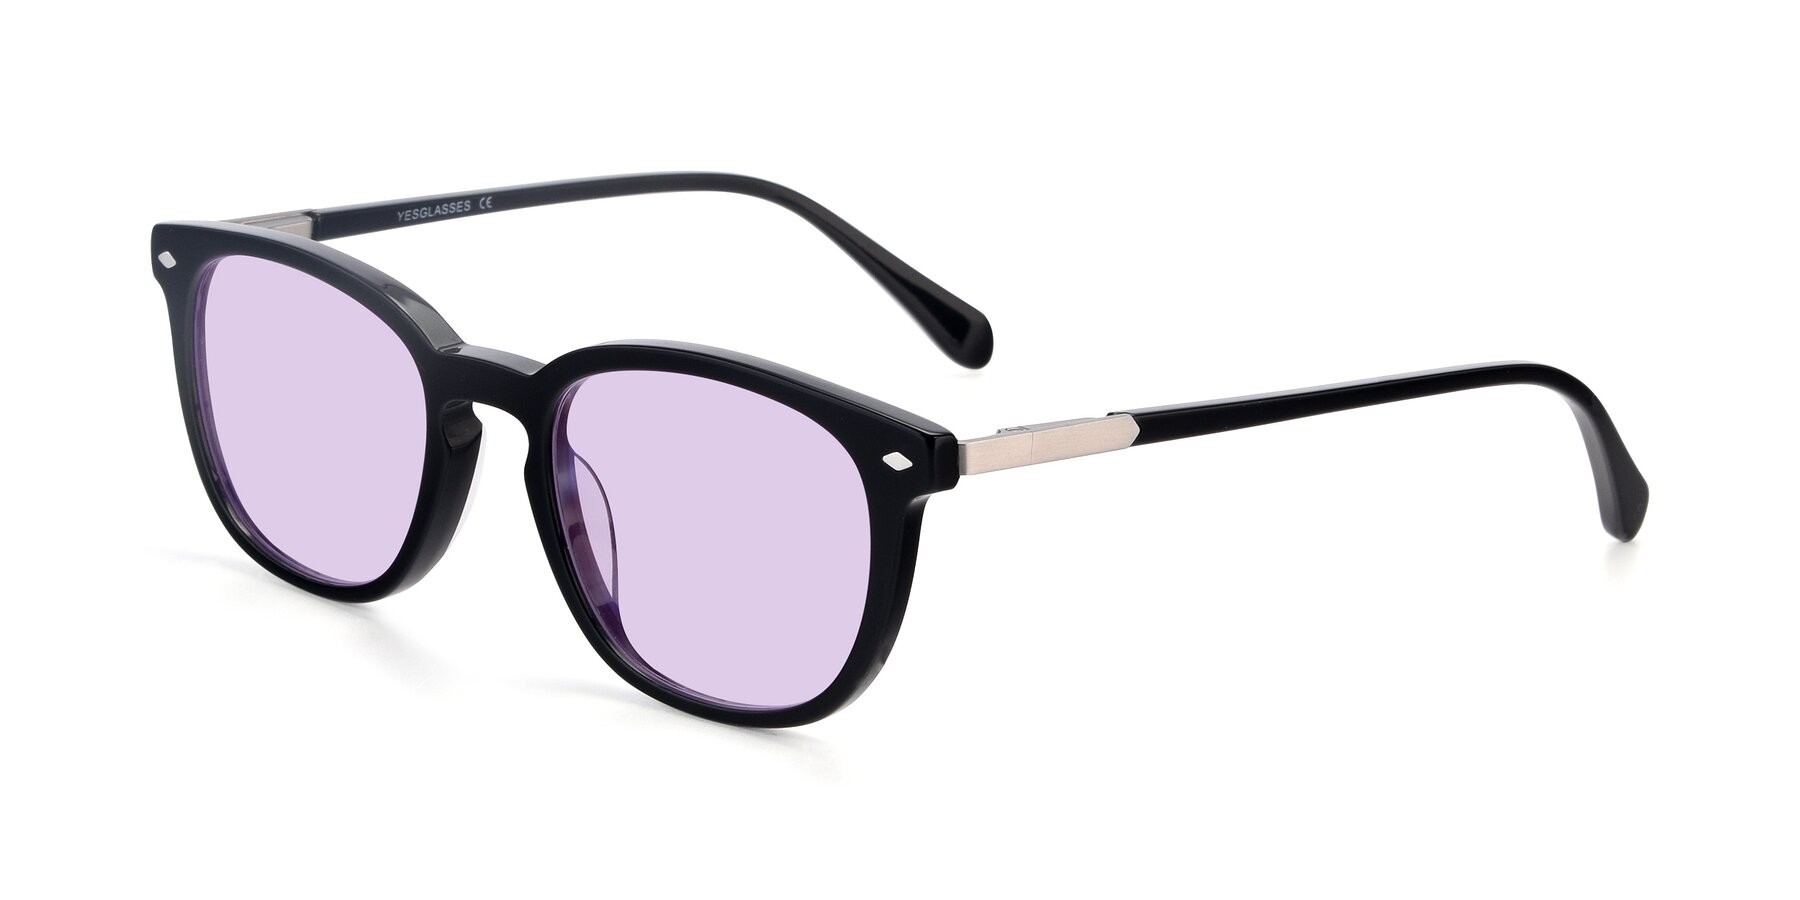 Angle of 17578 in Black with Light Purple Tinted Lenses